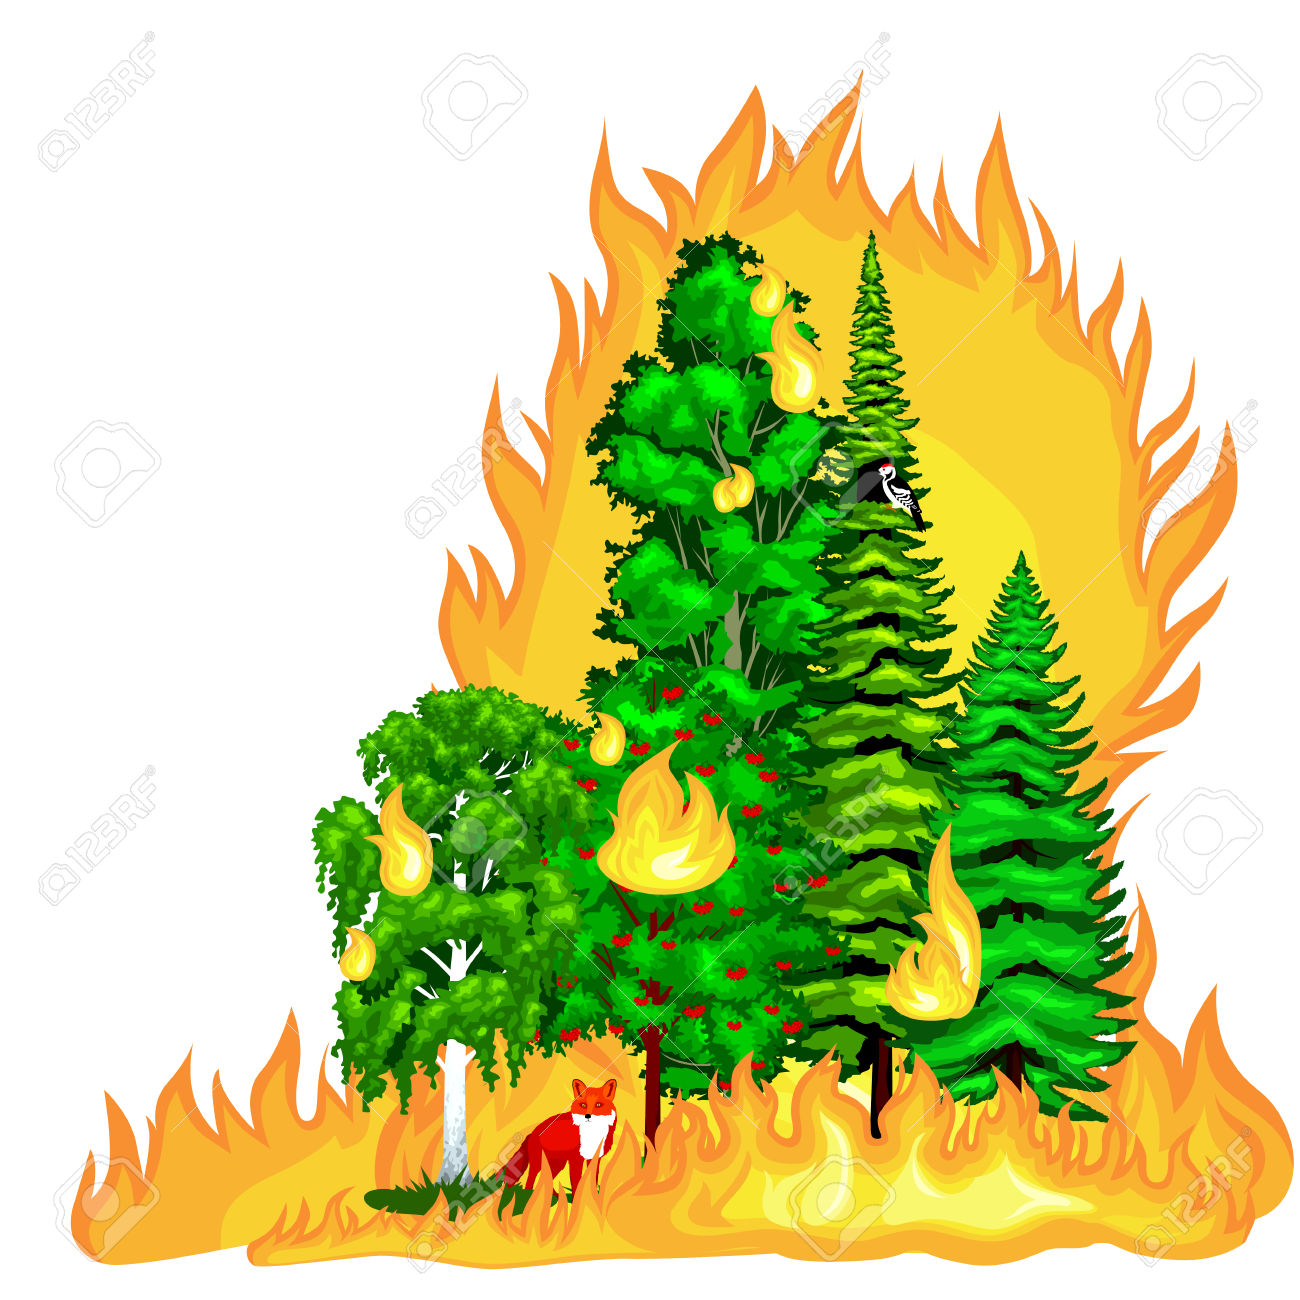 Fire clipart forest fire. In landscape damage nature